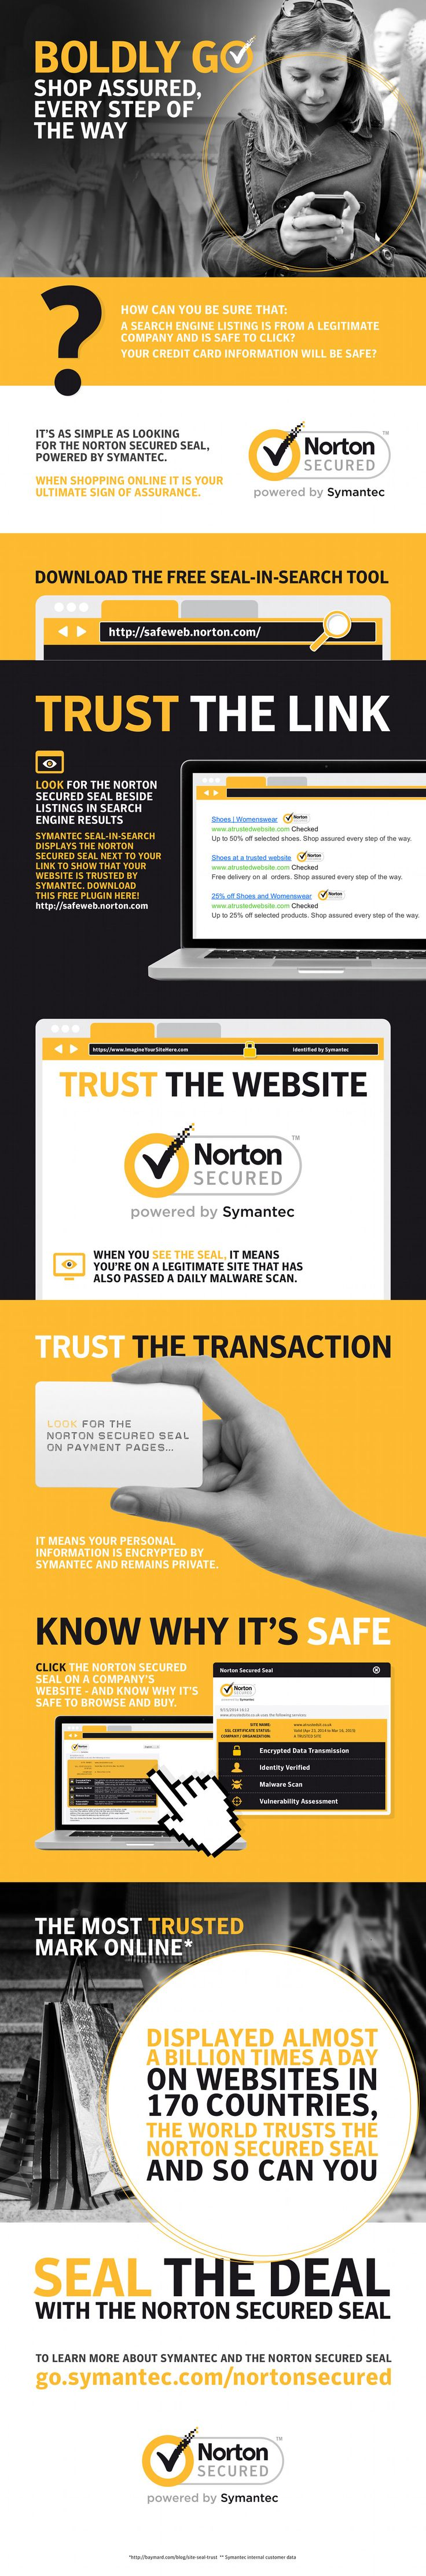 26 best ssl security https images on pinterest ssl security norton secured seal powered by symantec is an ultimate symbol of assurance that will scan your website daily basis to identify malware 1betcityfo Images